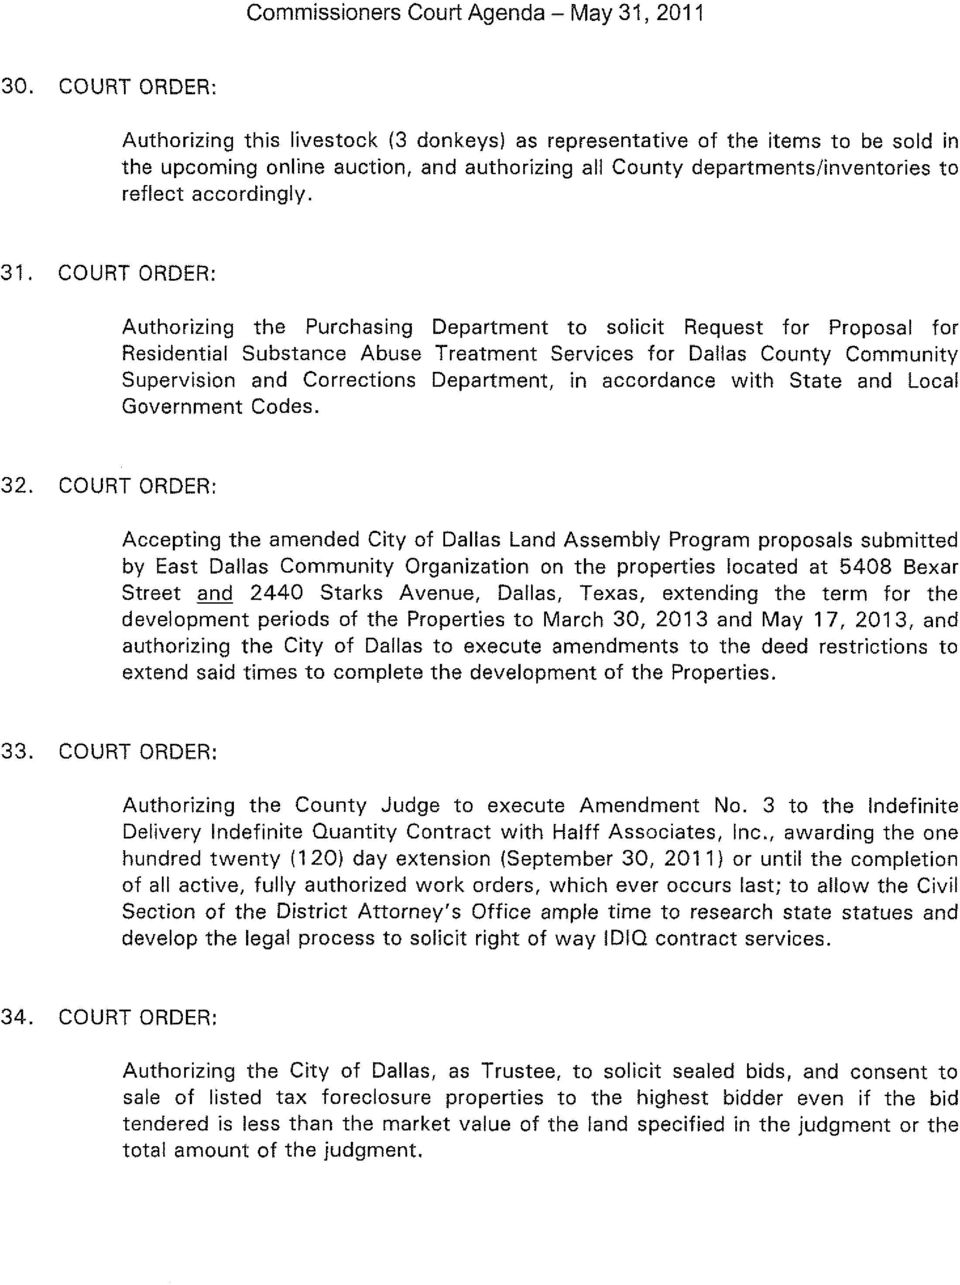 31. COURT ORDER: Authorizing the Purchasing Department to solicit Request for Proposal for Residential Substance Abuse Treatment Services for Dallas County Community Supervision and Corrections